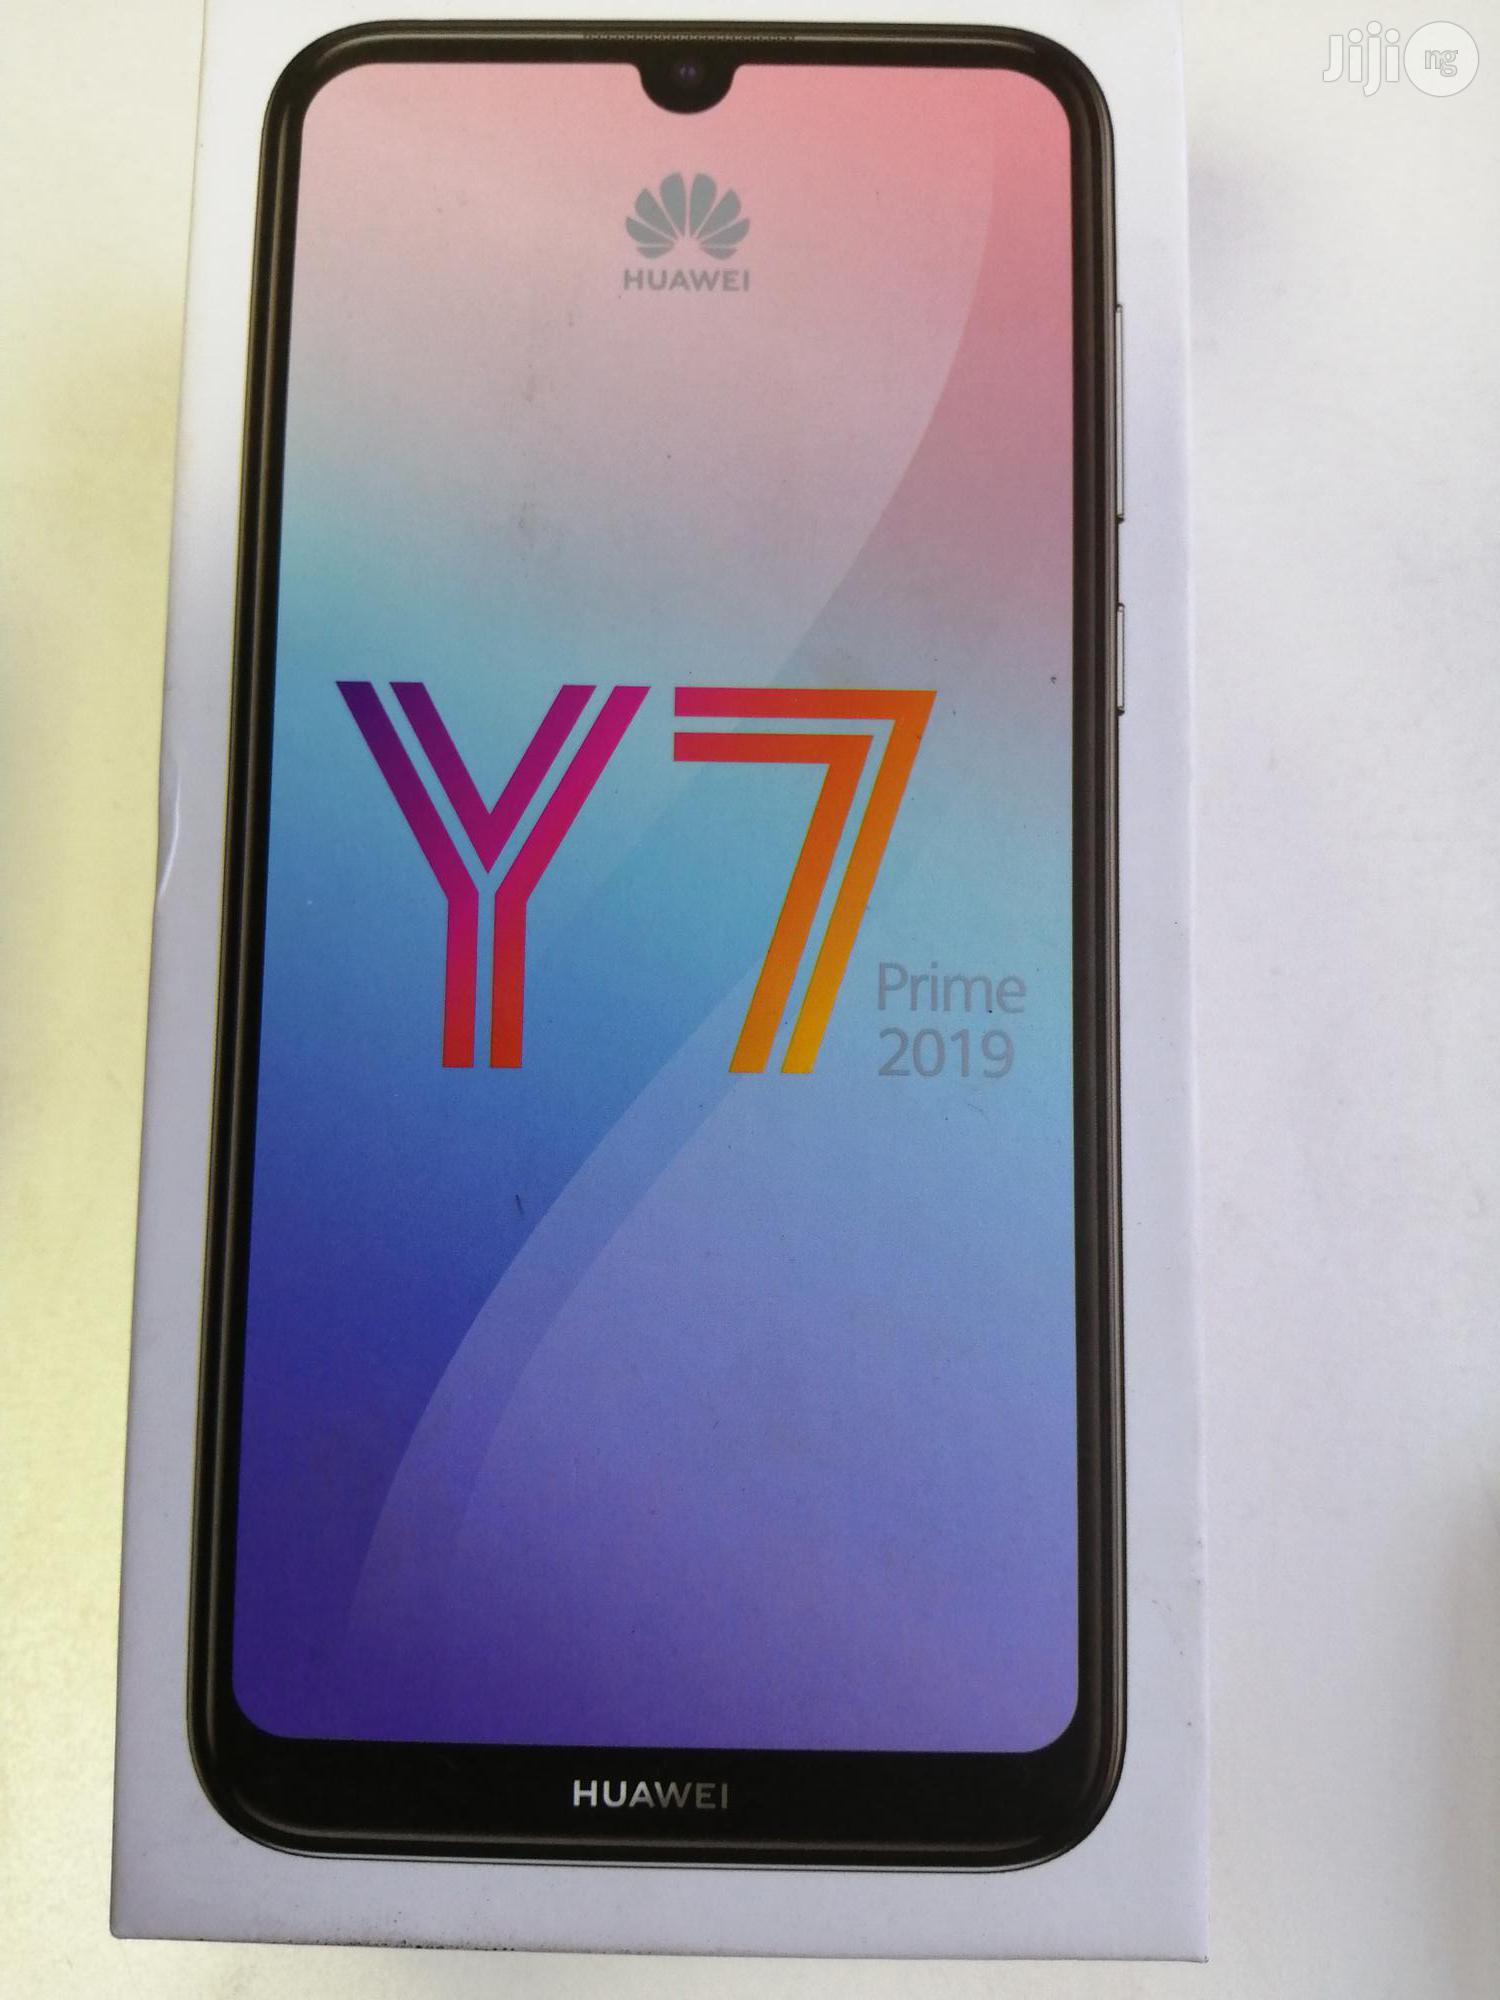 New Huawei Y7 Prime 32 GB Black